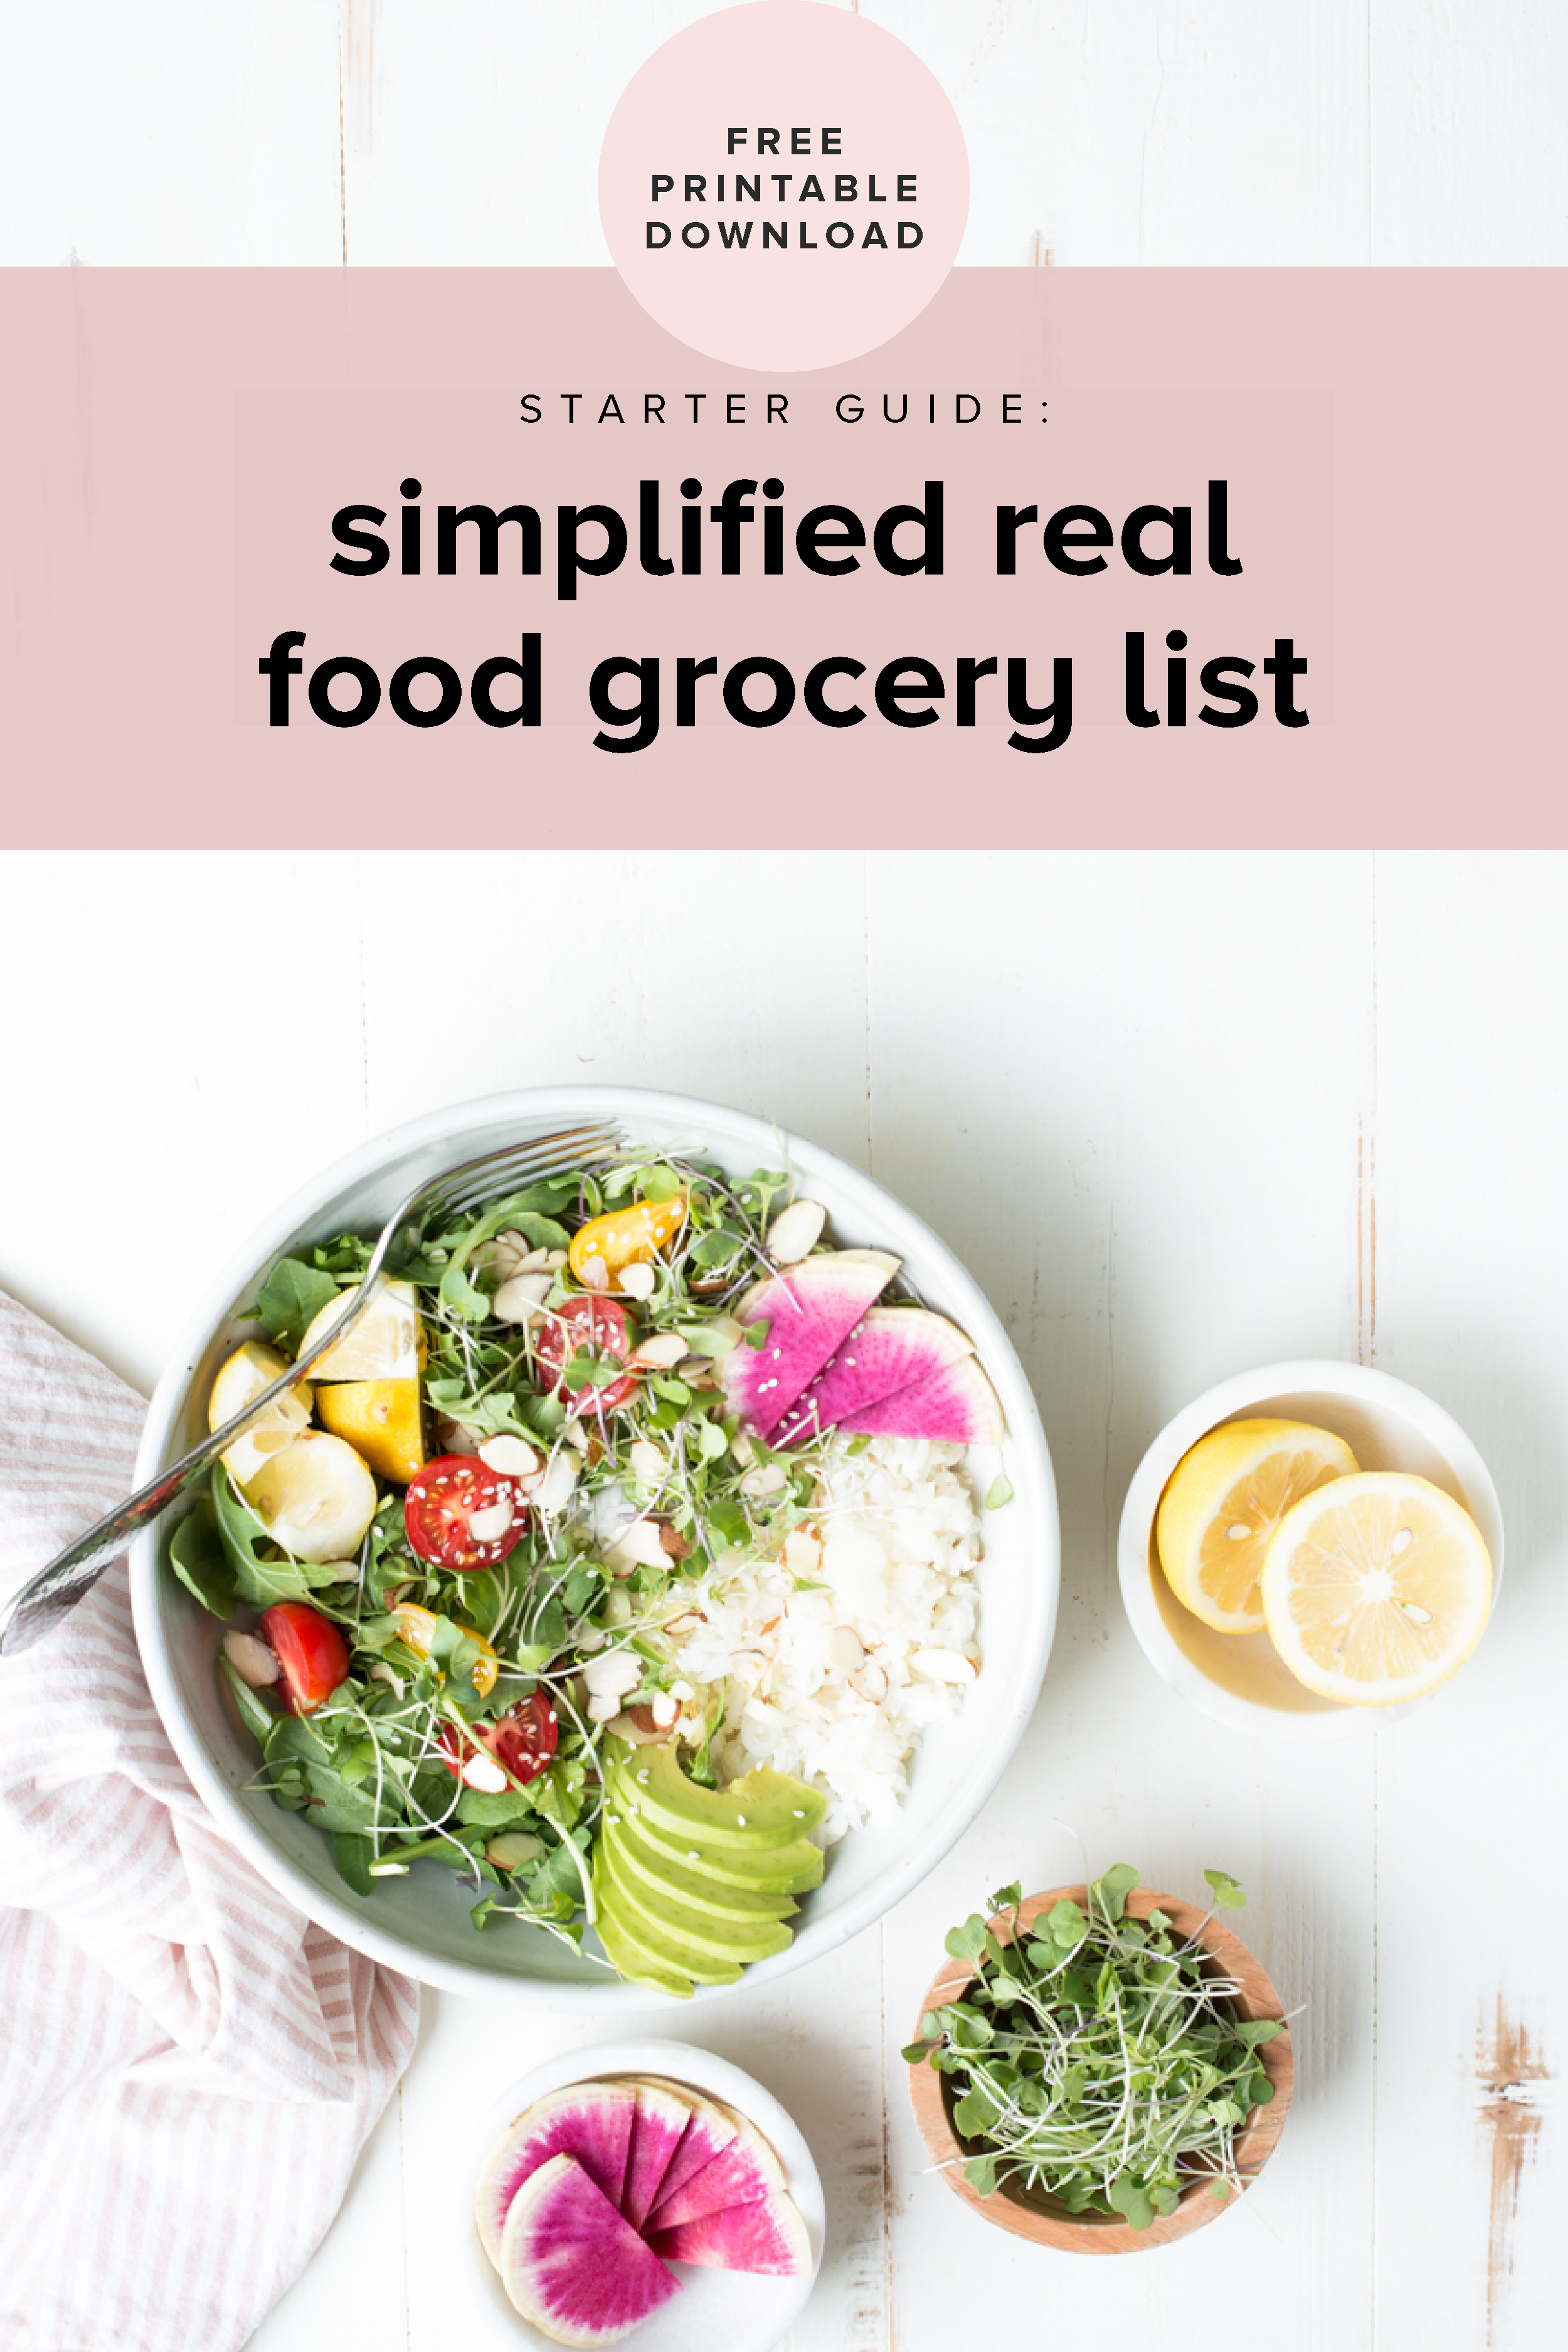 The definitive real food grocery list. Download the free list, now!